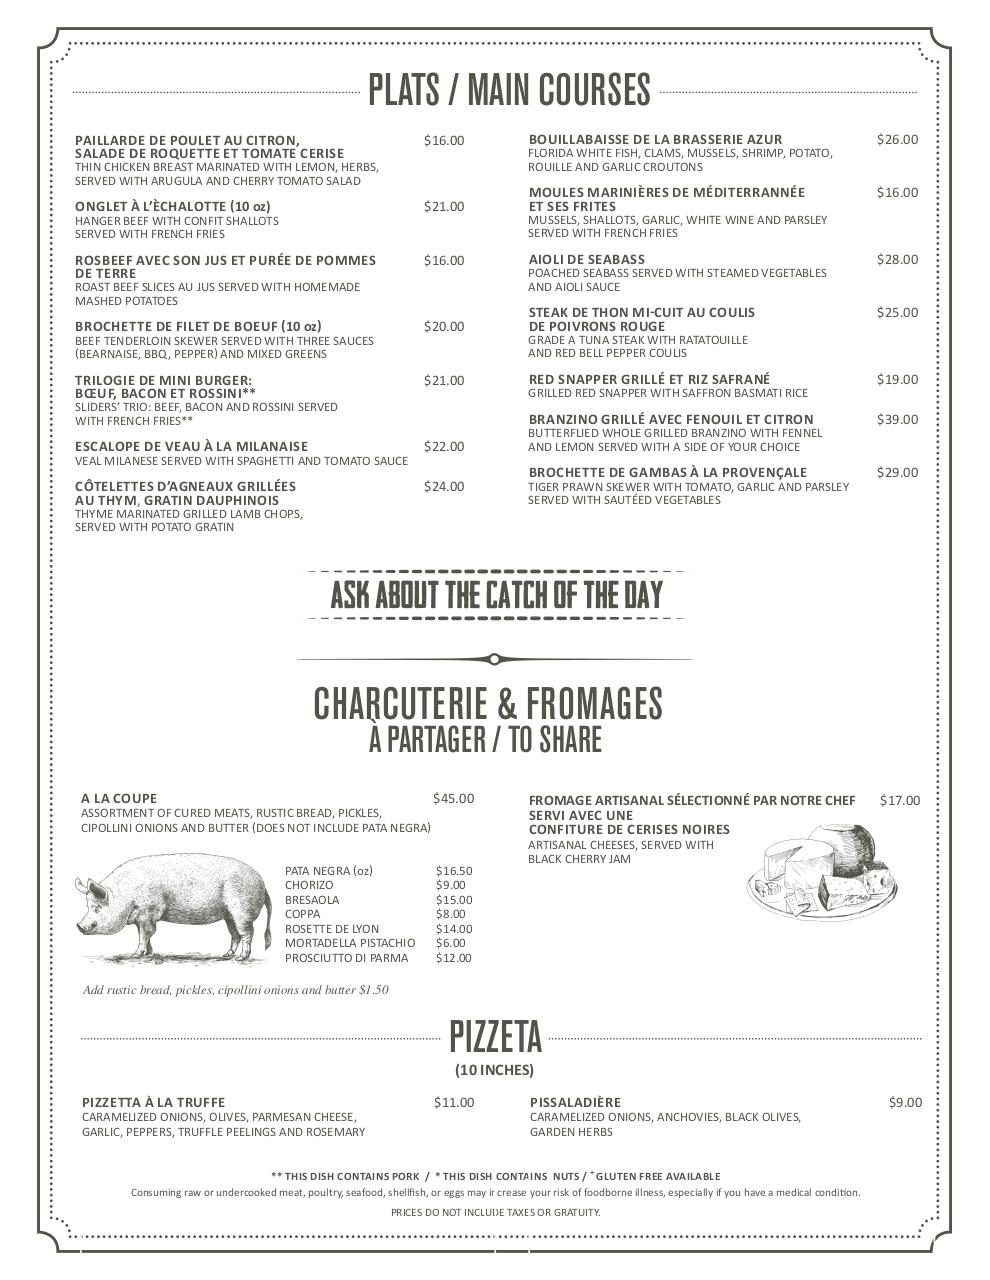 Preview of PDF document brasserie-azur-menu-8-web-version.pdf